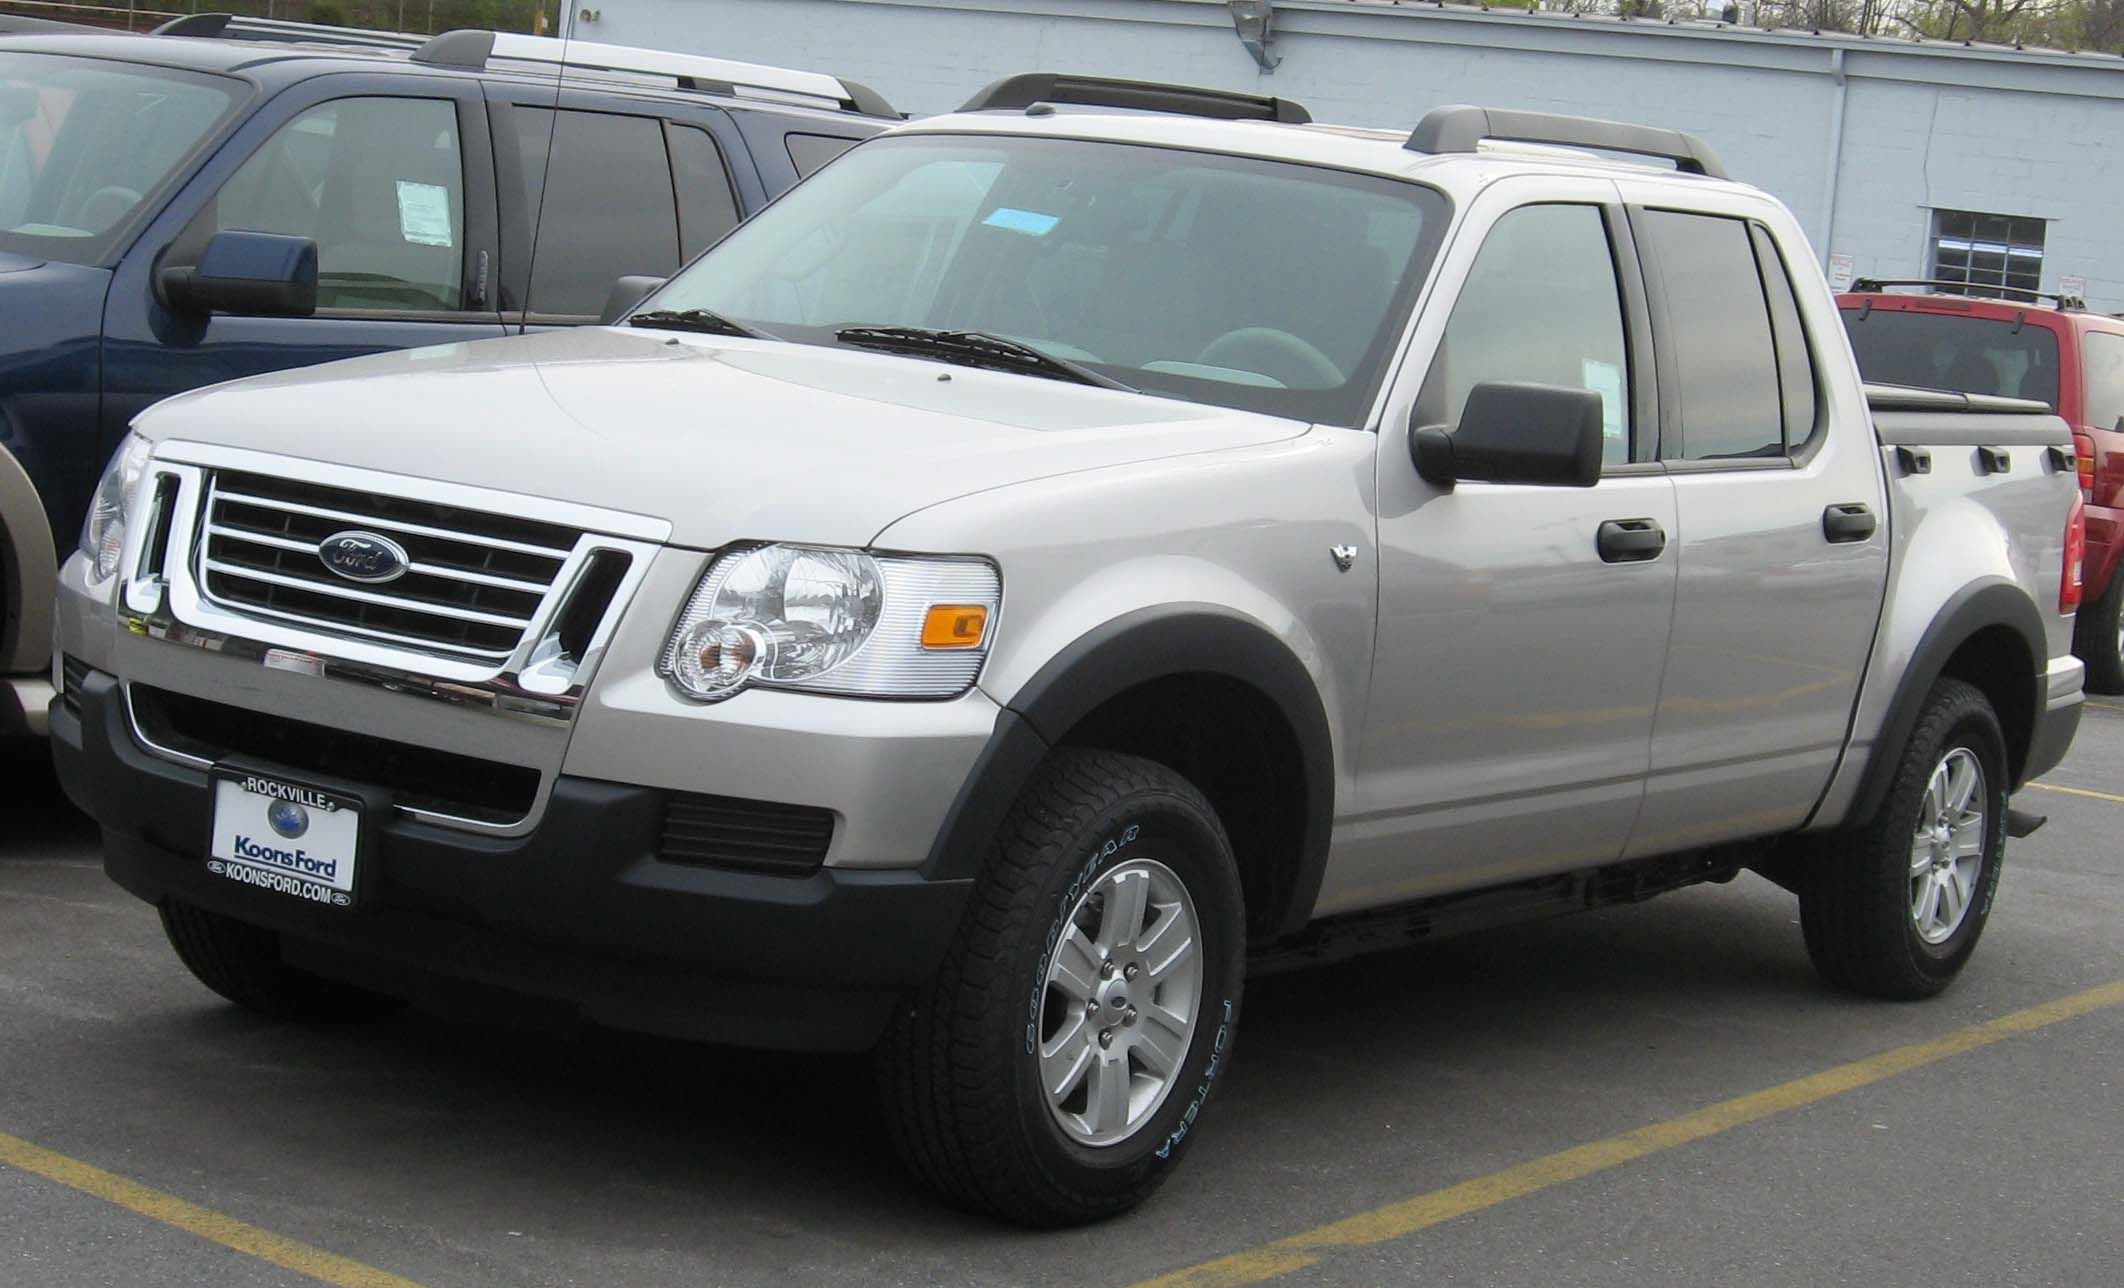 Ford Sport Trac Ford explorer, 2010 ford explorer, Ford